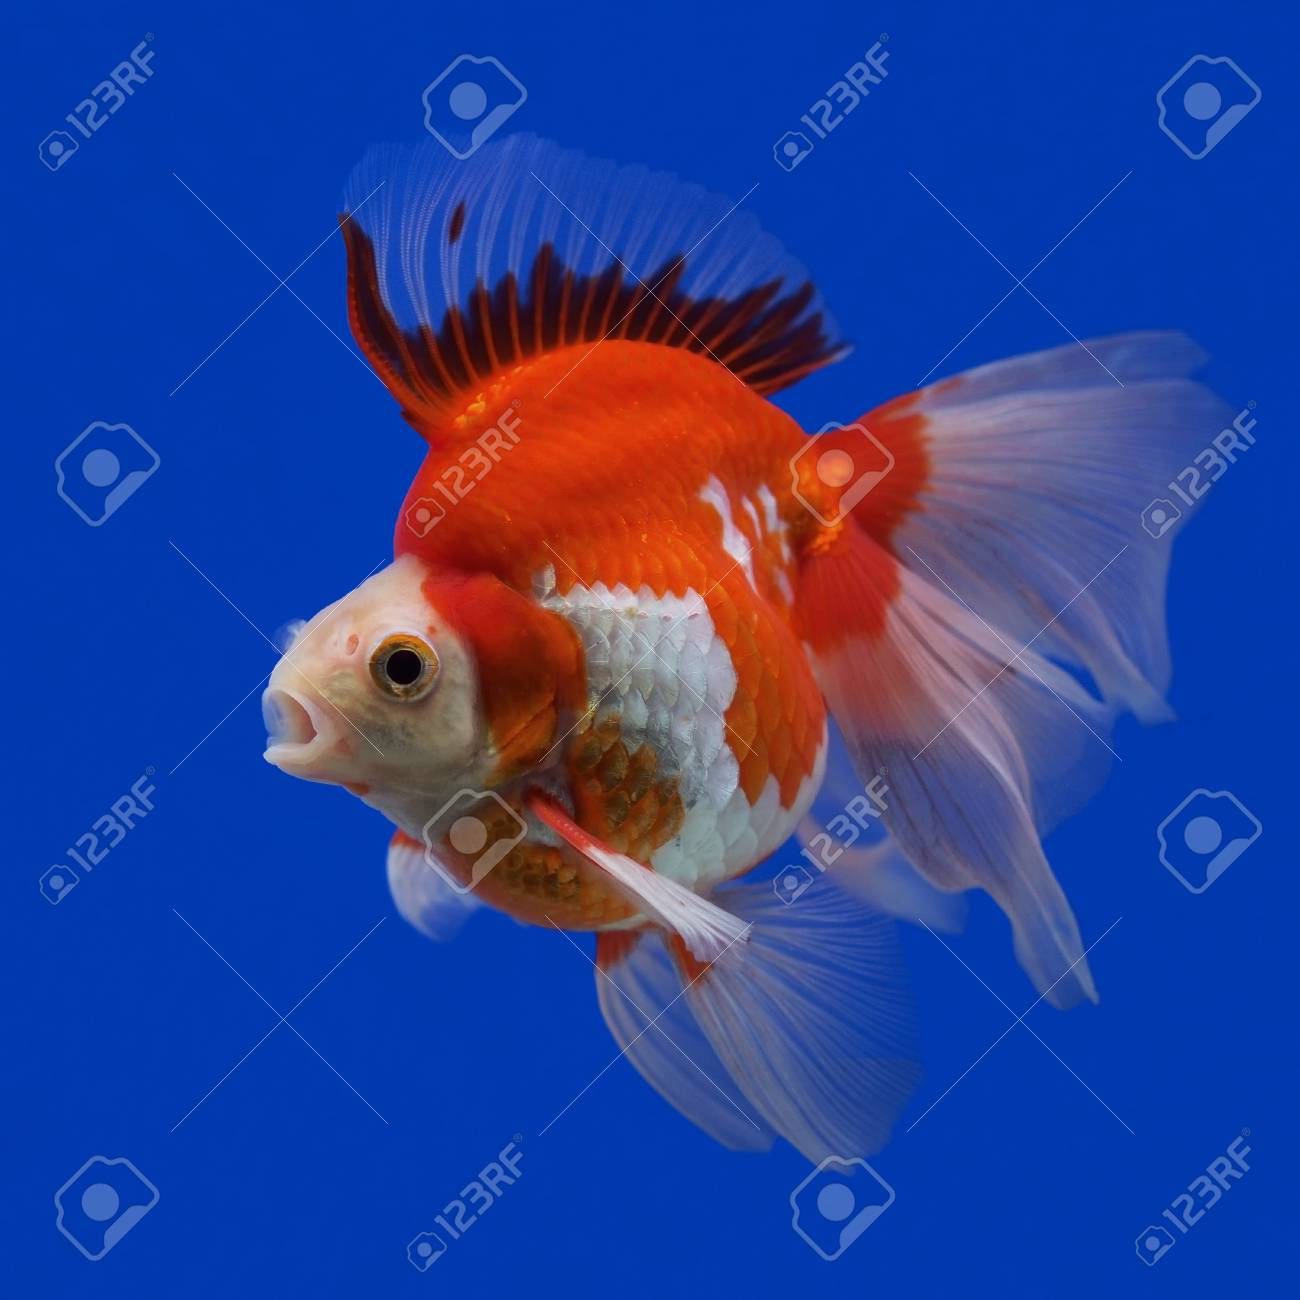 Beautiful Goldfish In The Aquarium Stock Photo Picture And Royalty Free Image Image 34248260